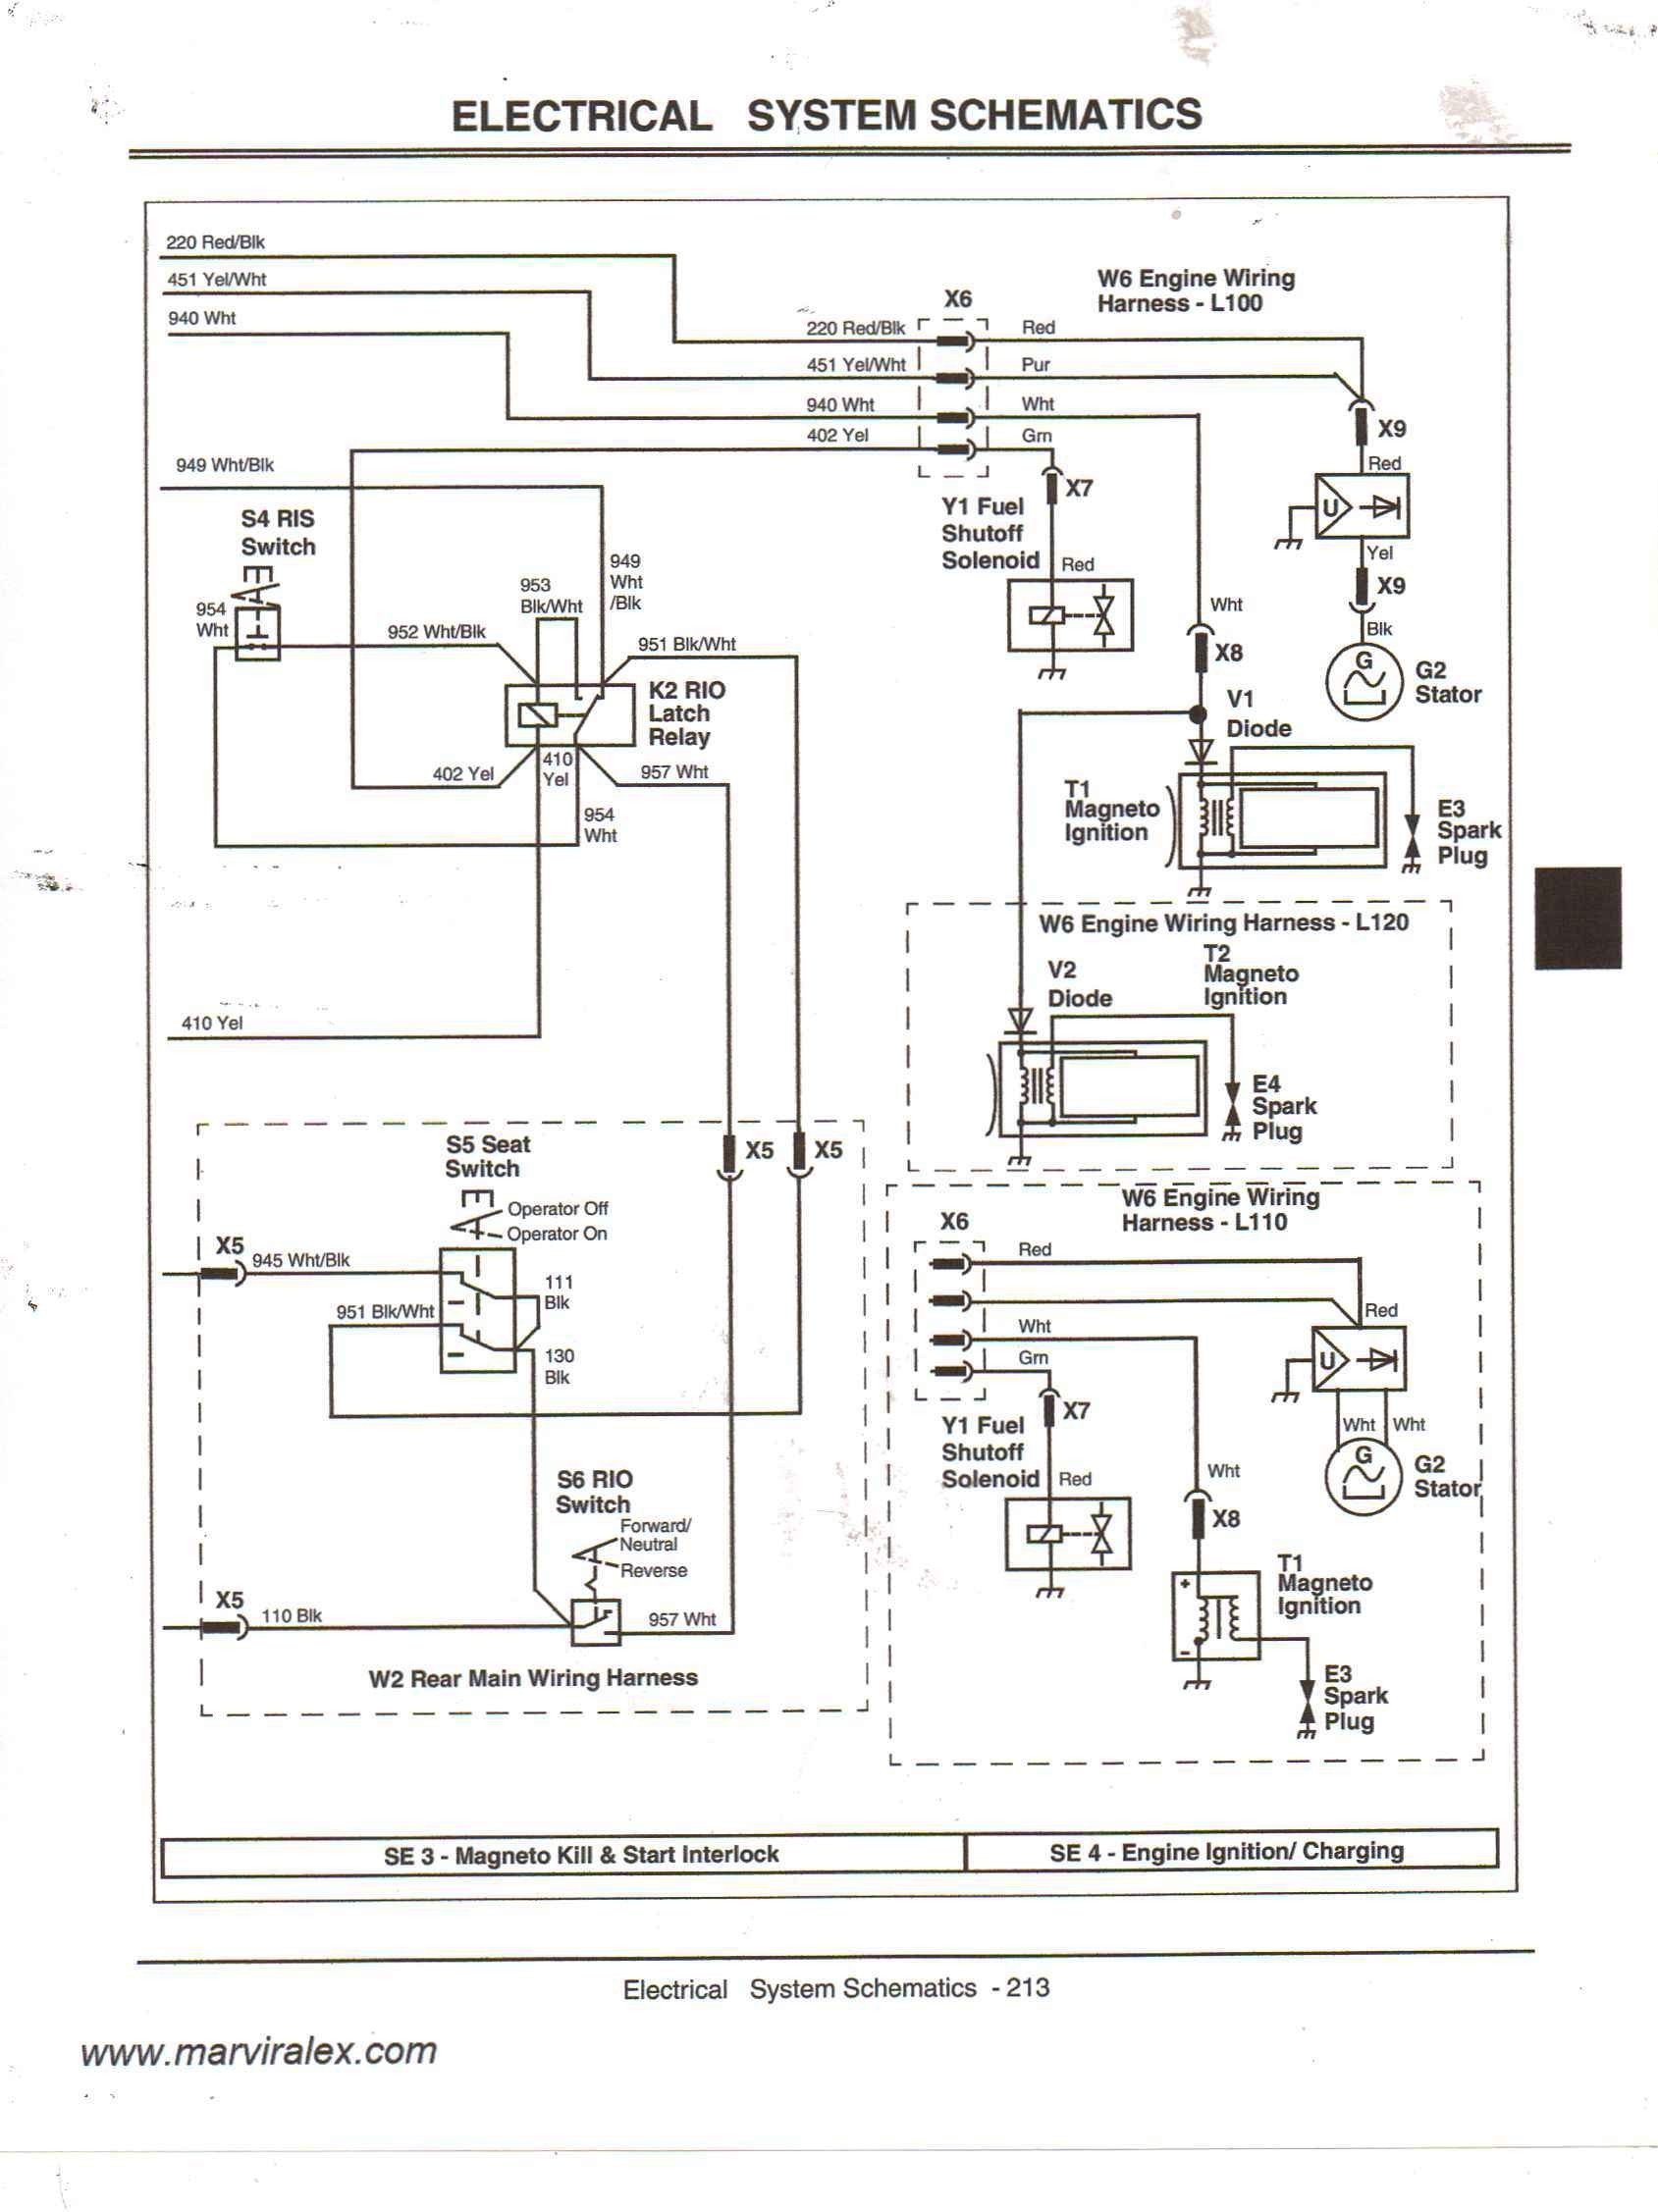 wiring diagram for john deere 455 wiring diagramjohn deere 345 kawasaki wiring diagrams moreover exmark walk behindjohn deere 455 diesel fuse box diagram